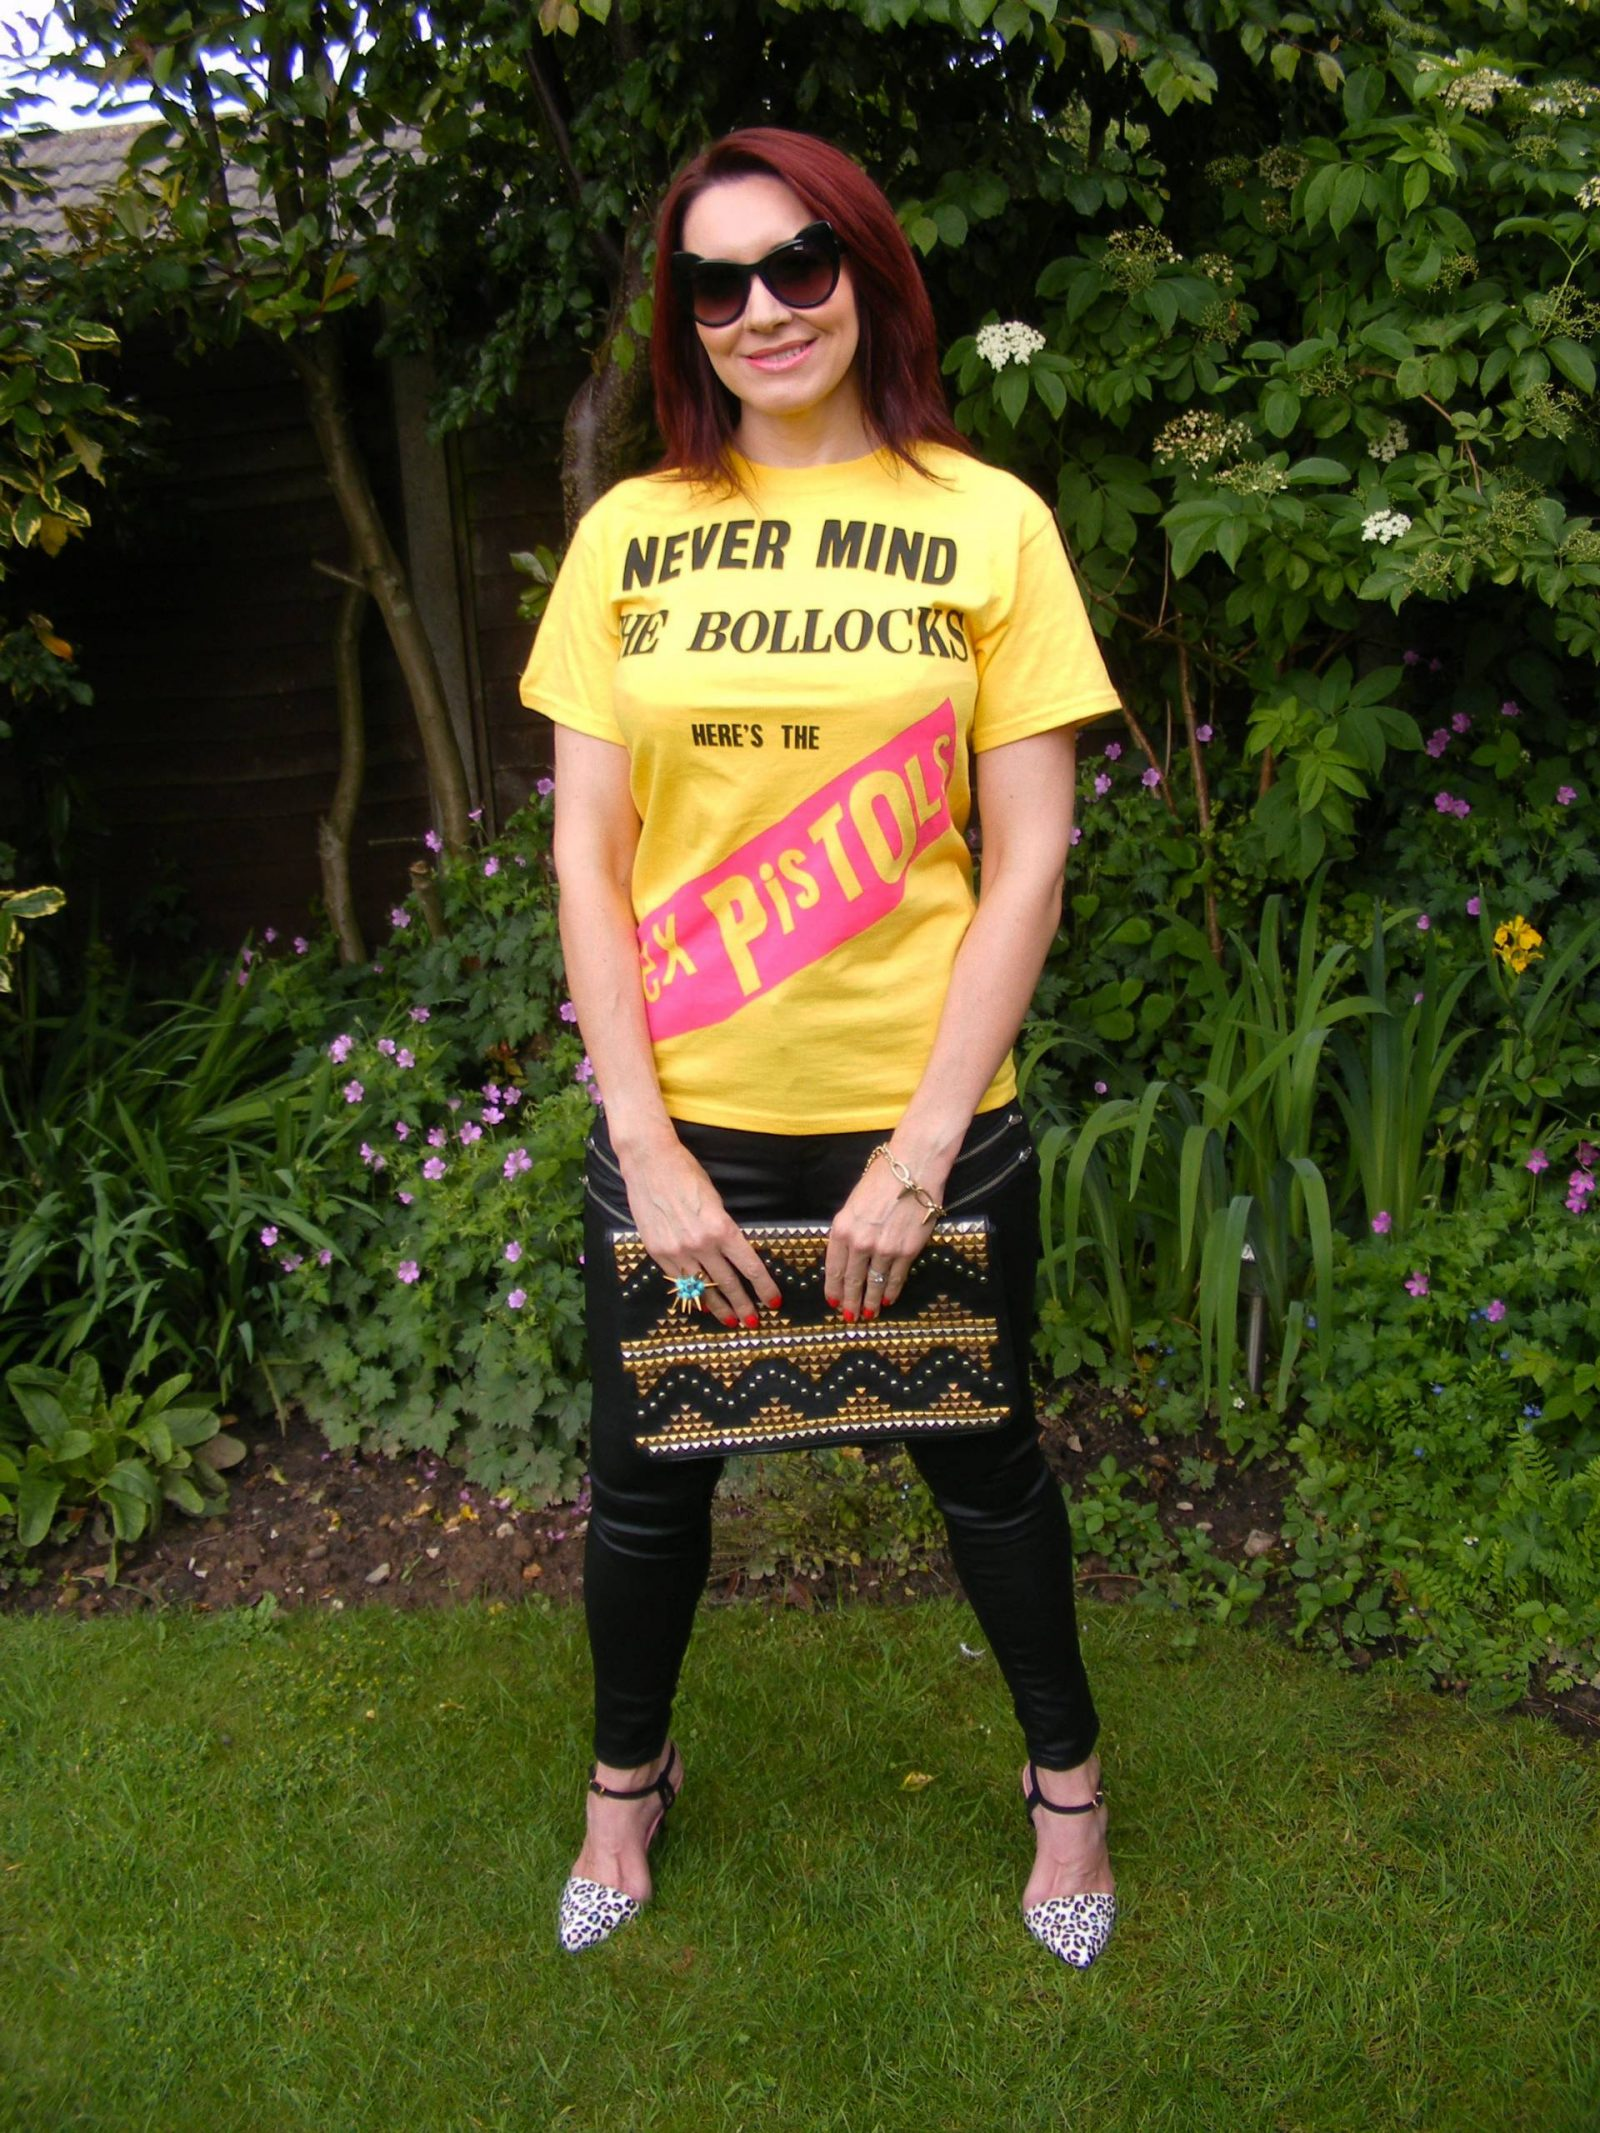 """Uptown Punk - Never Mind the """"Rules"""", Sex Pistols tee, Very coated black jeans, Asos studded clutch"""